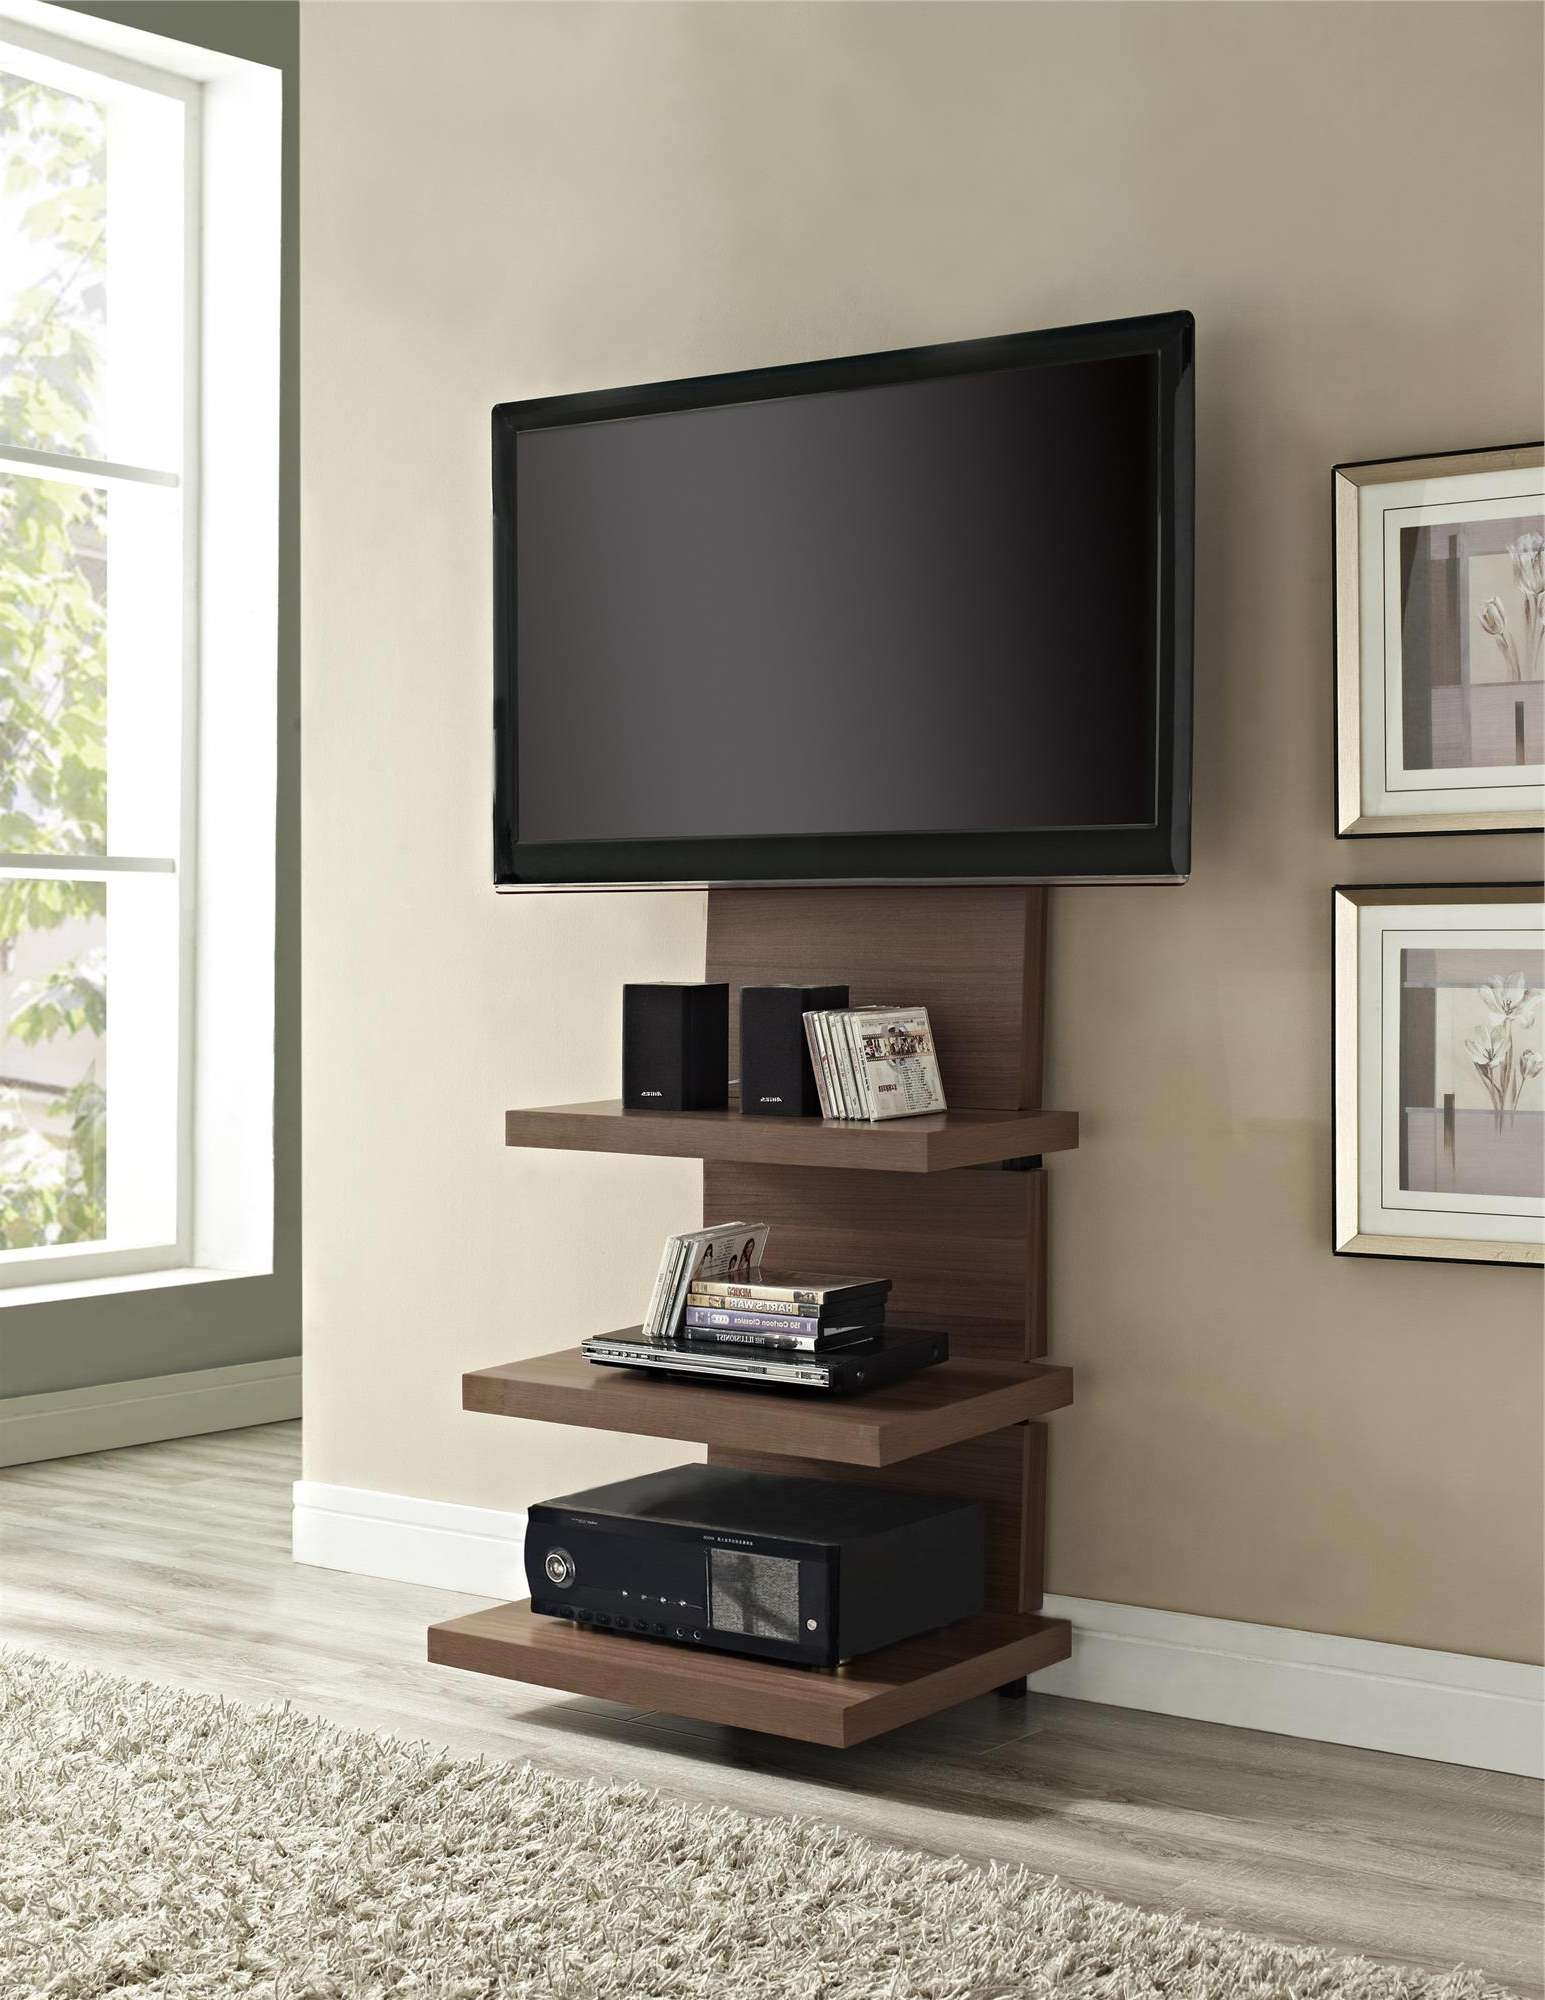 Cool Custom Modern Vertical Wood Tv Stands With Floating Display For Cool Tv Stands (View 4 of 15)